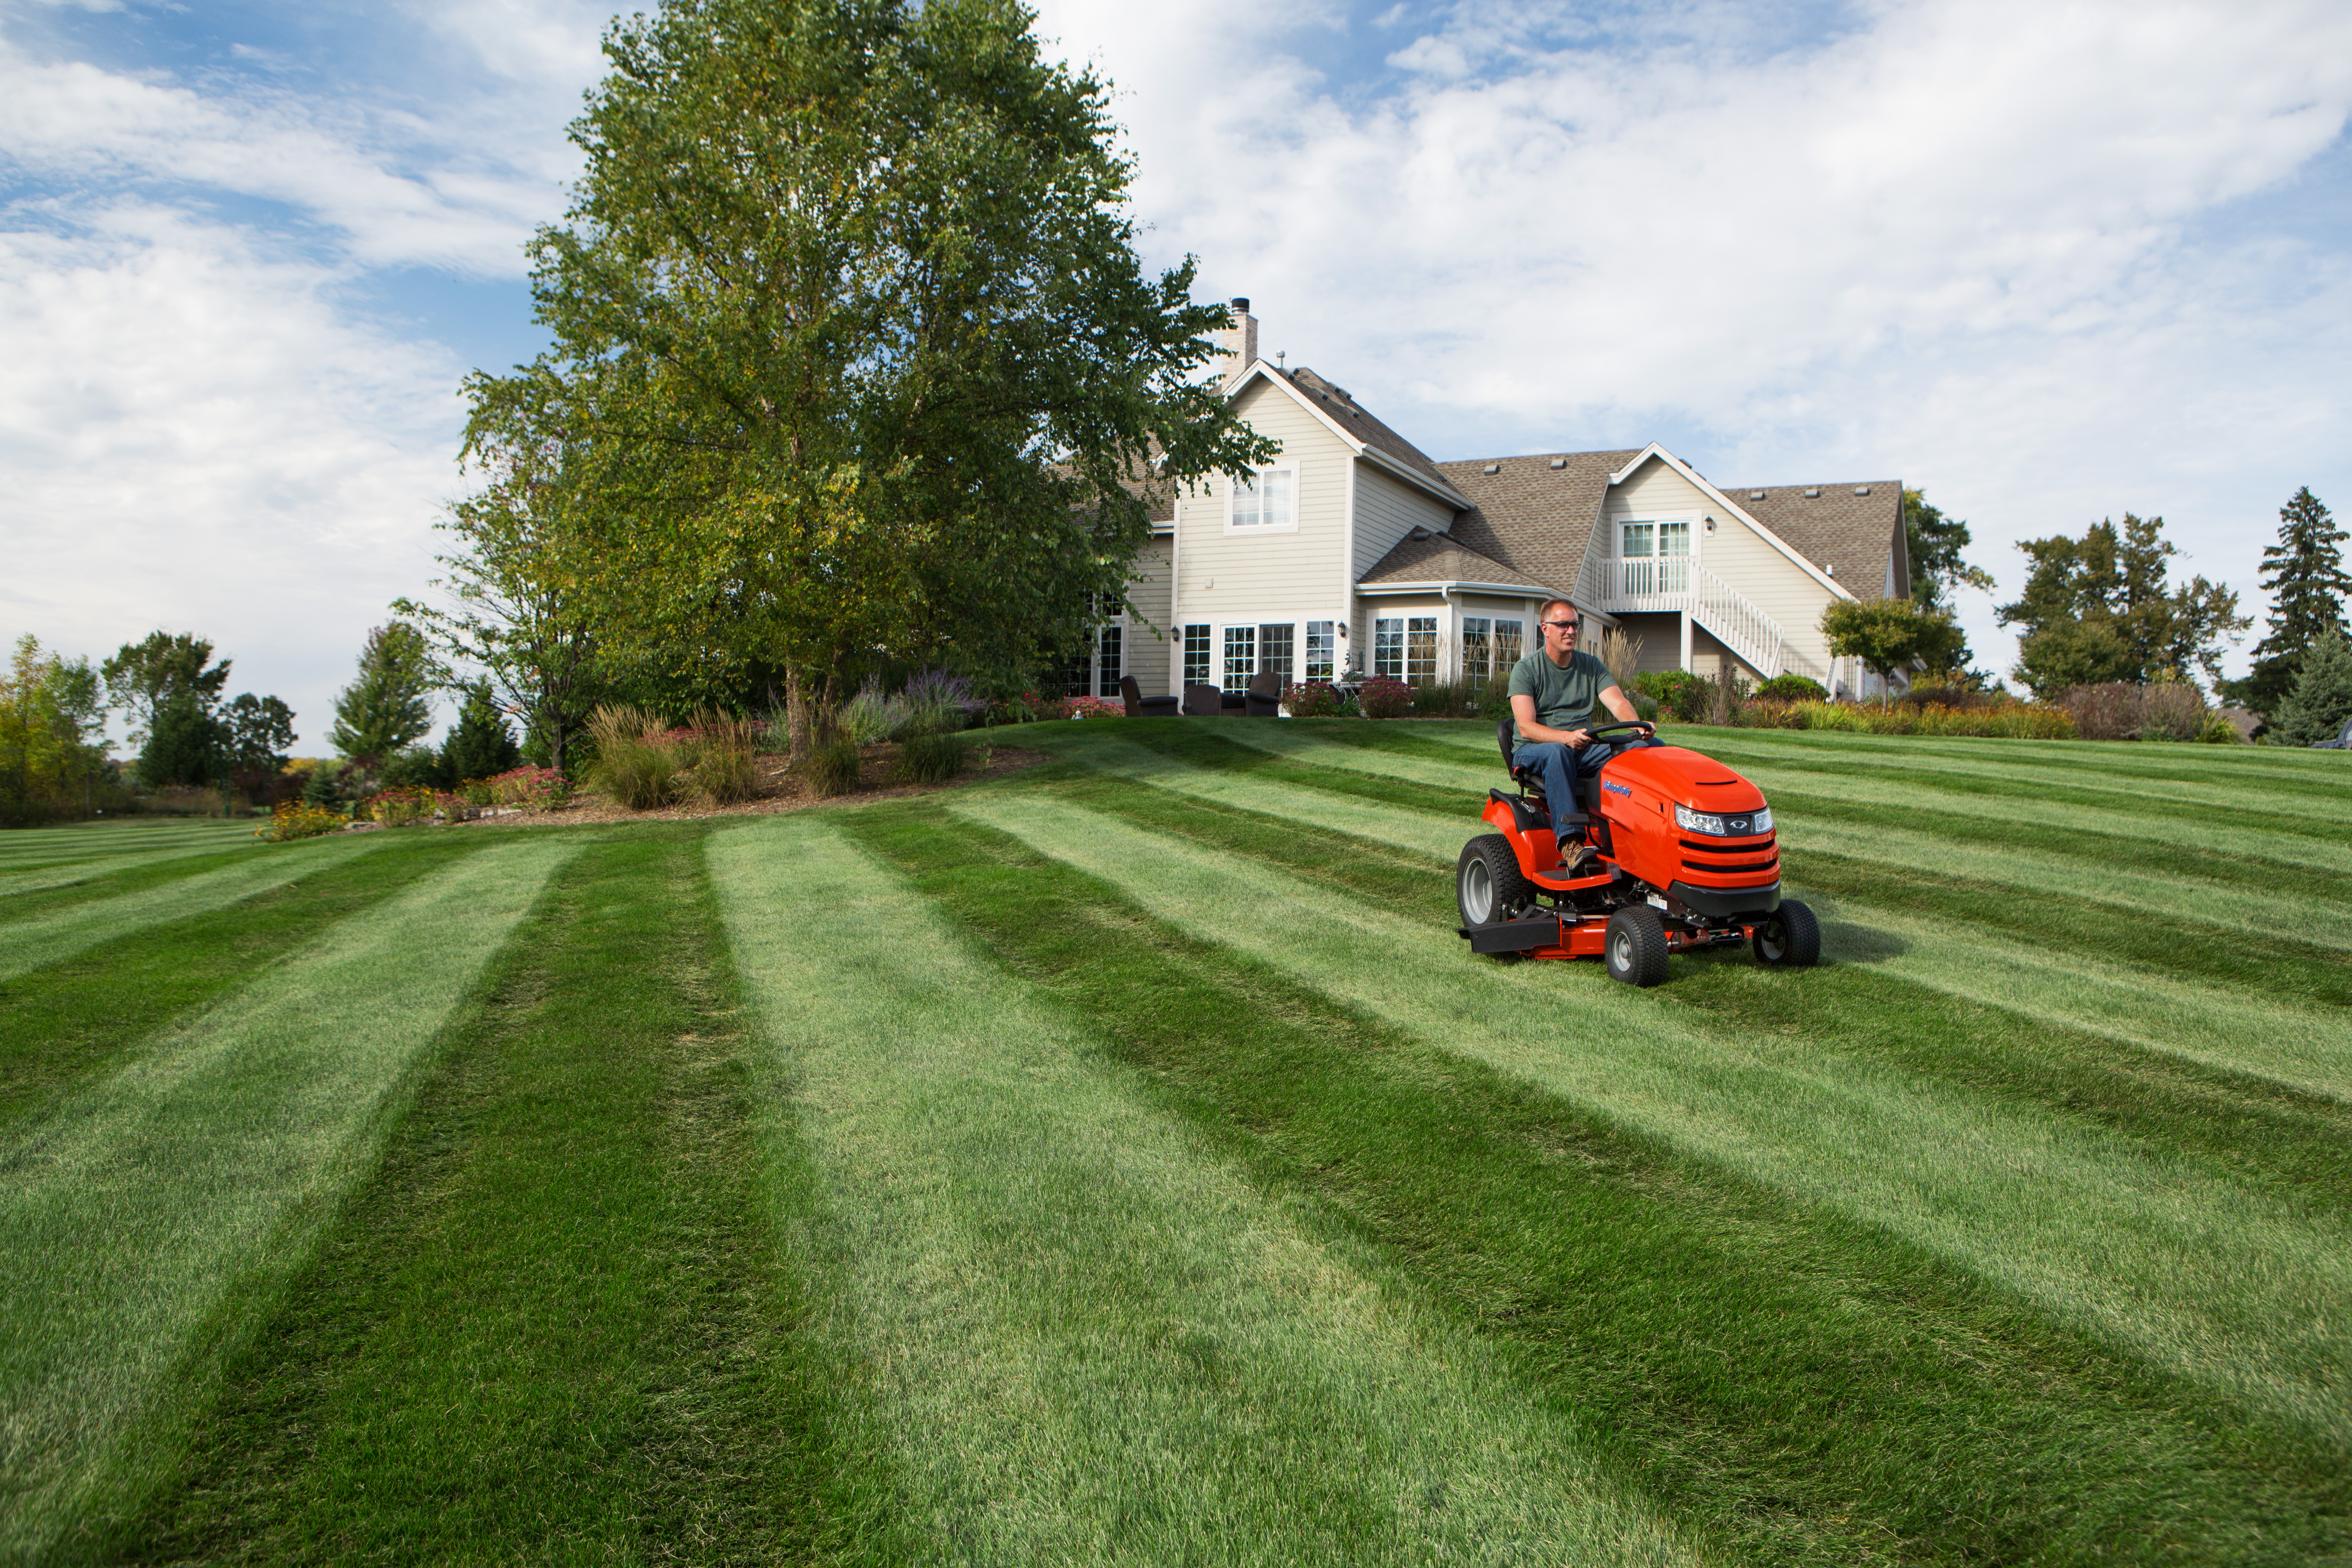 lawn striping: how to mow ballpark grass patterns | simplicity